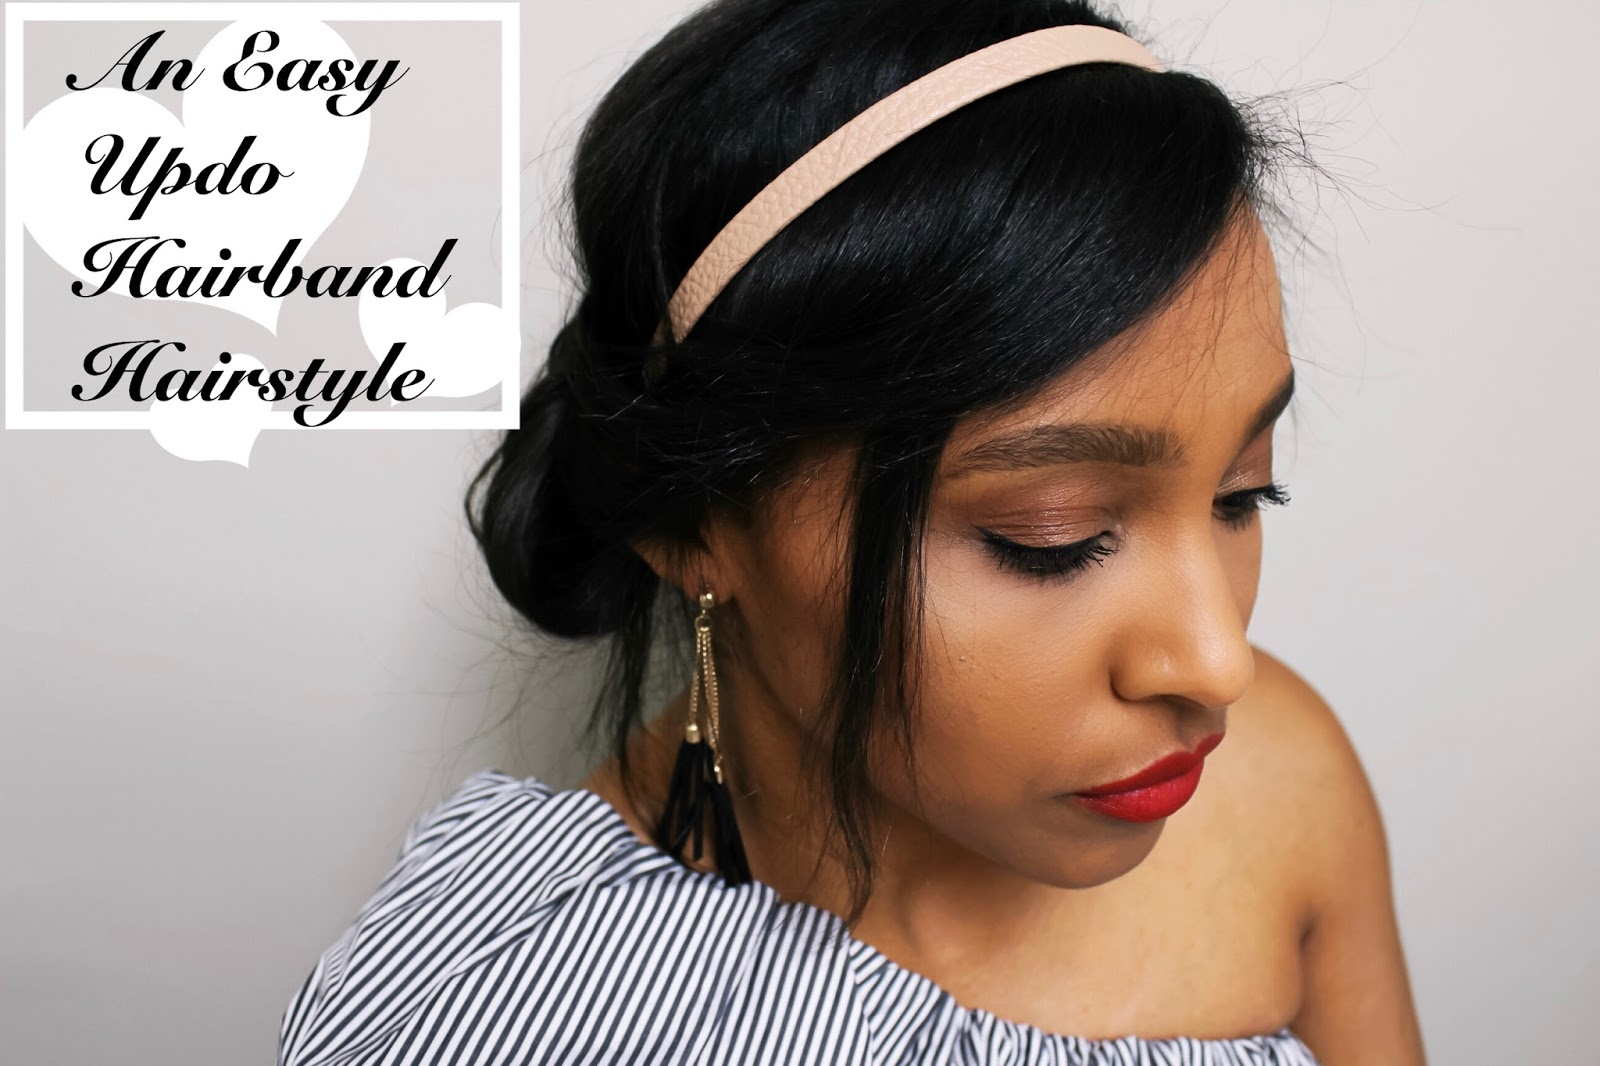 An Easy Updo Hairband Hairstyle